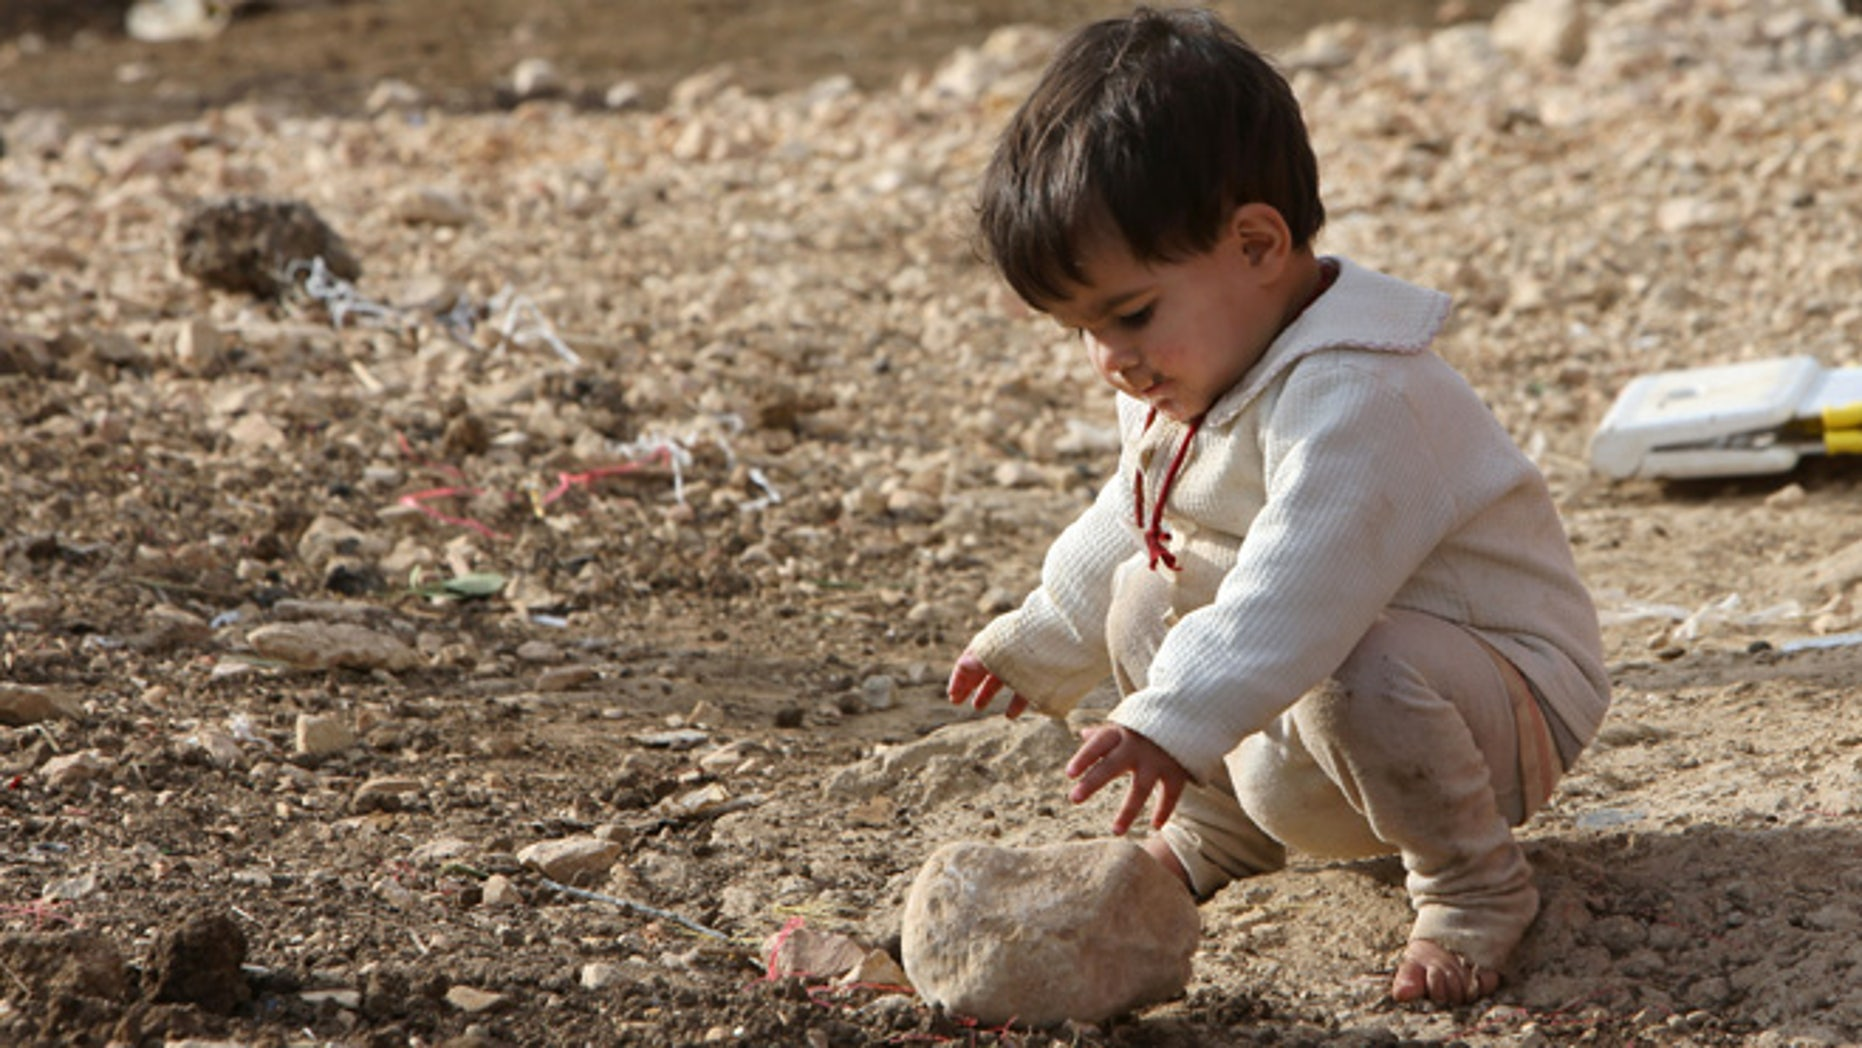 Nov. 5, 2013: A Syrian child plays with a stone at a refugee camp in Delhamiyeh village in the Bekaa valley, eastern Lebanon. There are more than 800,000 refugees registered with the U.N. refugees agency in Lebanon, but the Lebanese government estimates the real number of Syrians in the country at more than 1 million, or around one-third of the tiny countrys population.